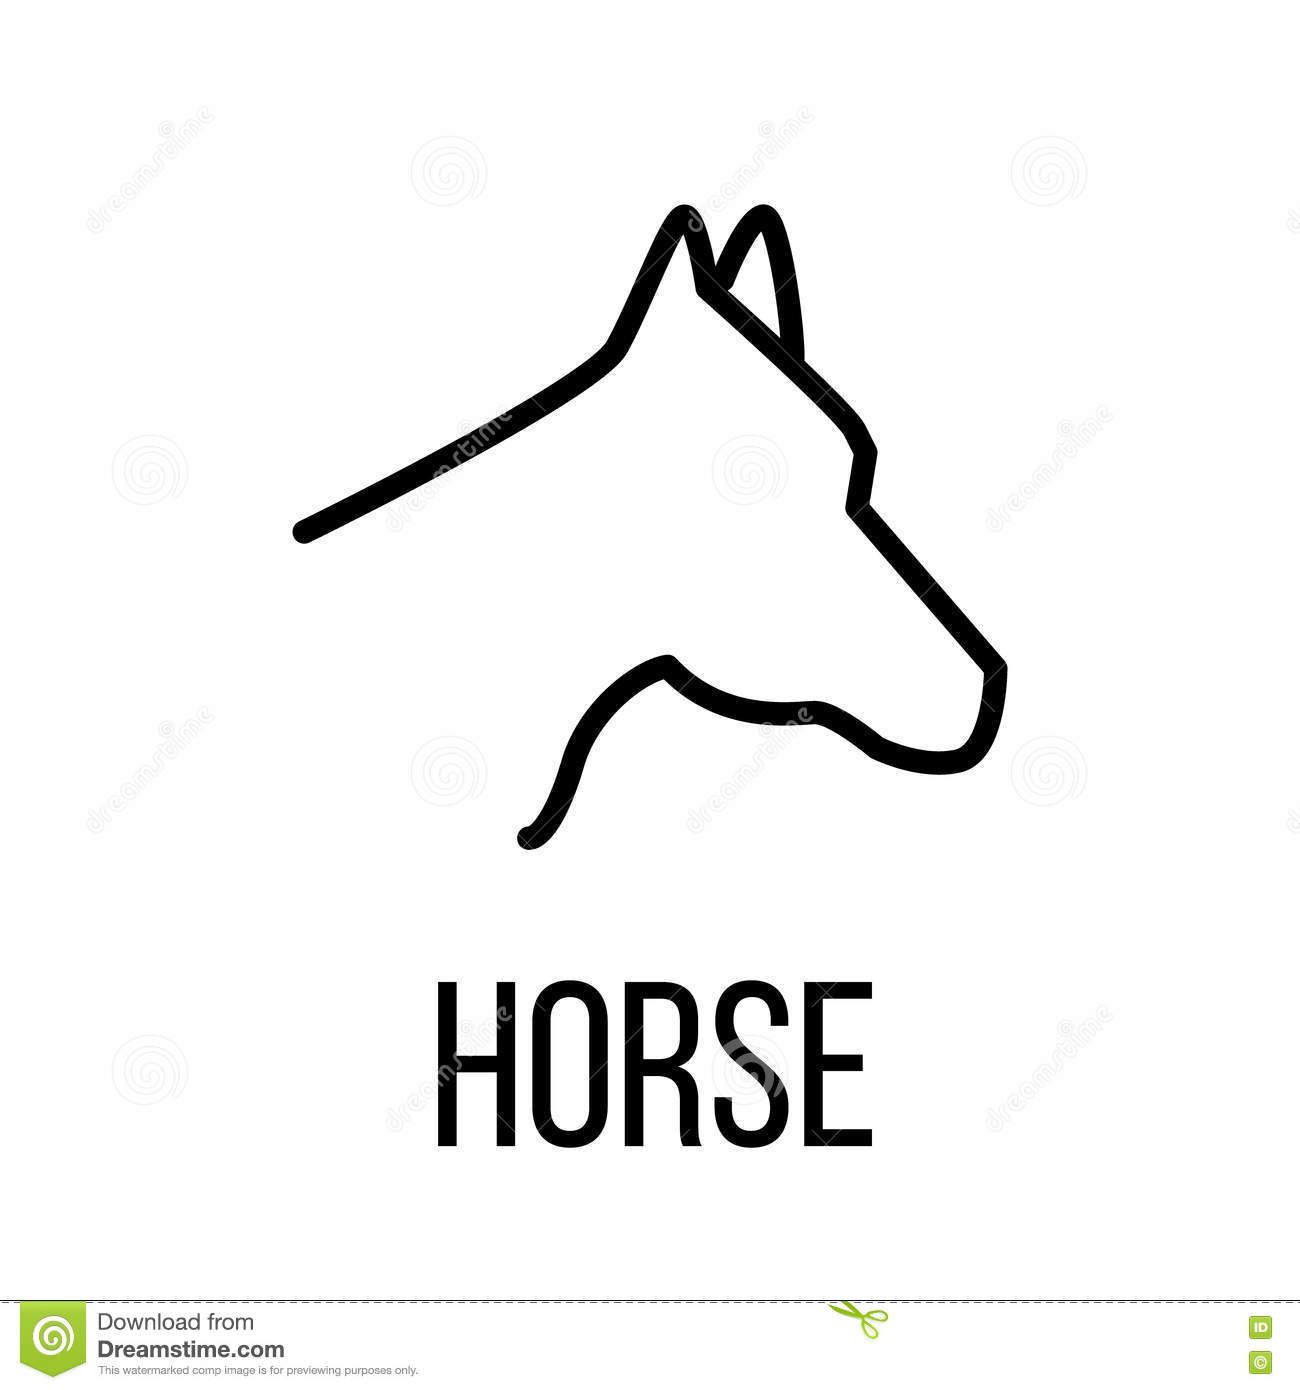 horse shoe black dating site Featuring the best odds and highest limits along with legendary entertainment, horseshoe is one of today's leading casino destinations for gamblers.